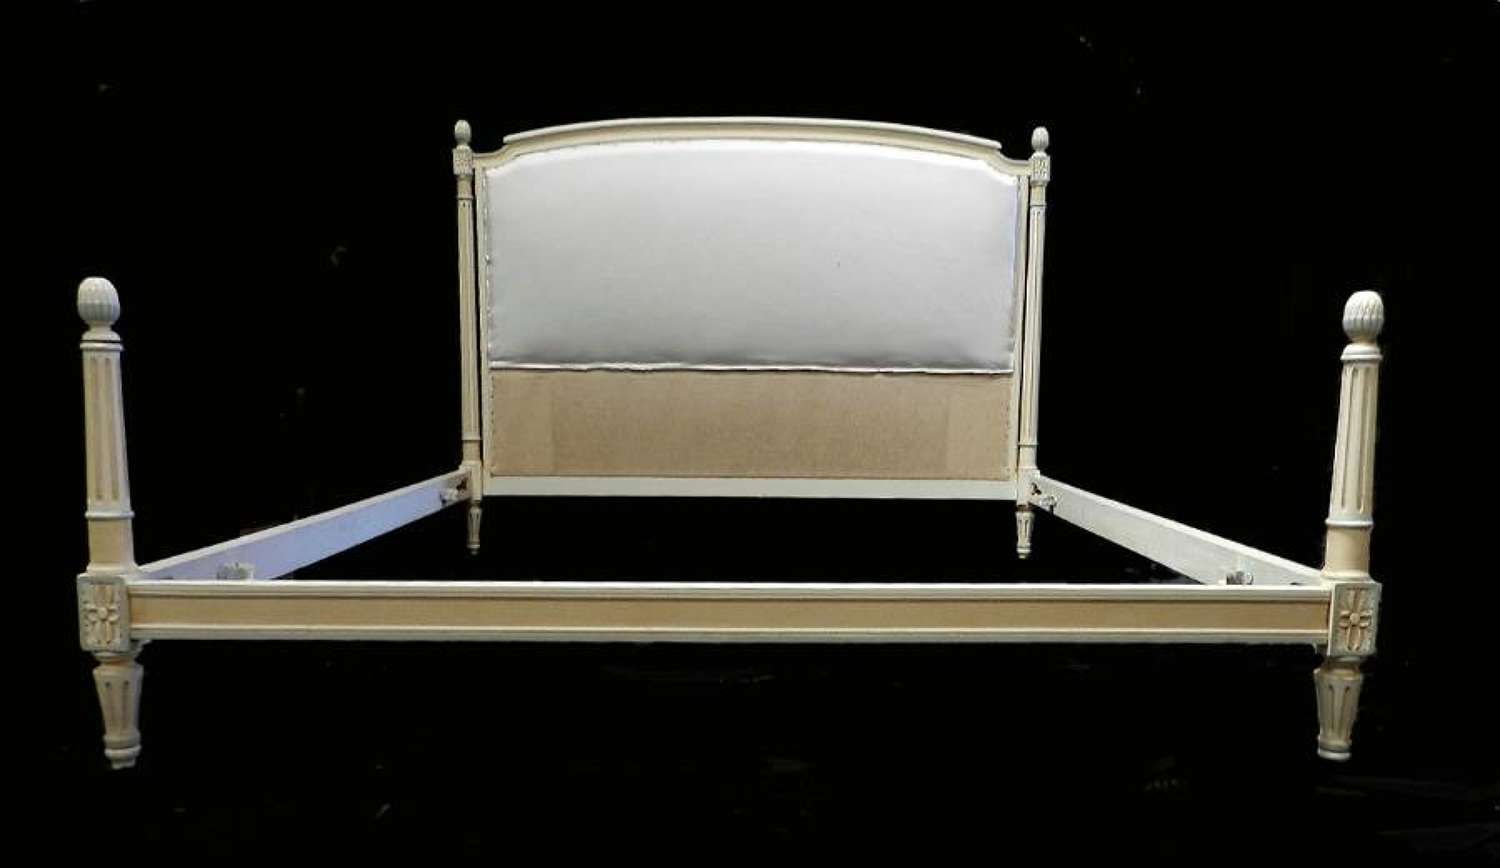 French Bed + Base to calico ready for top covers UK King size US Queen